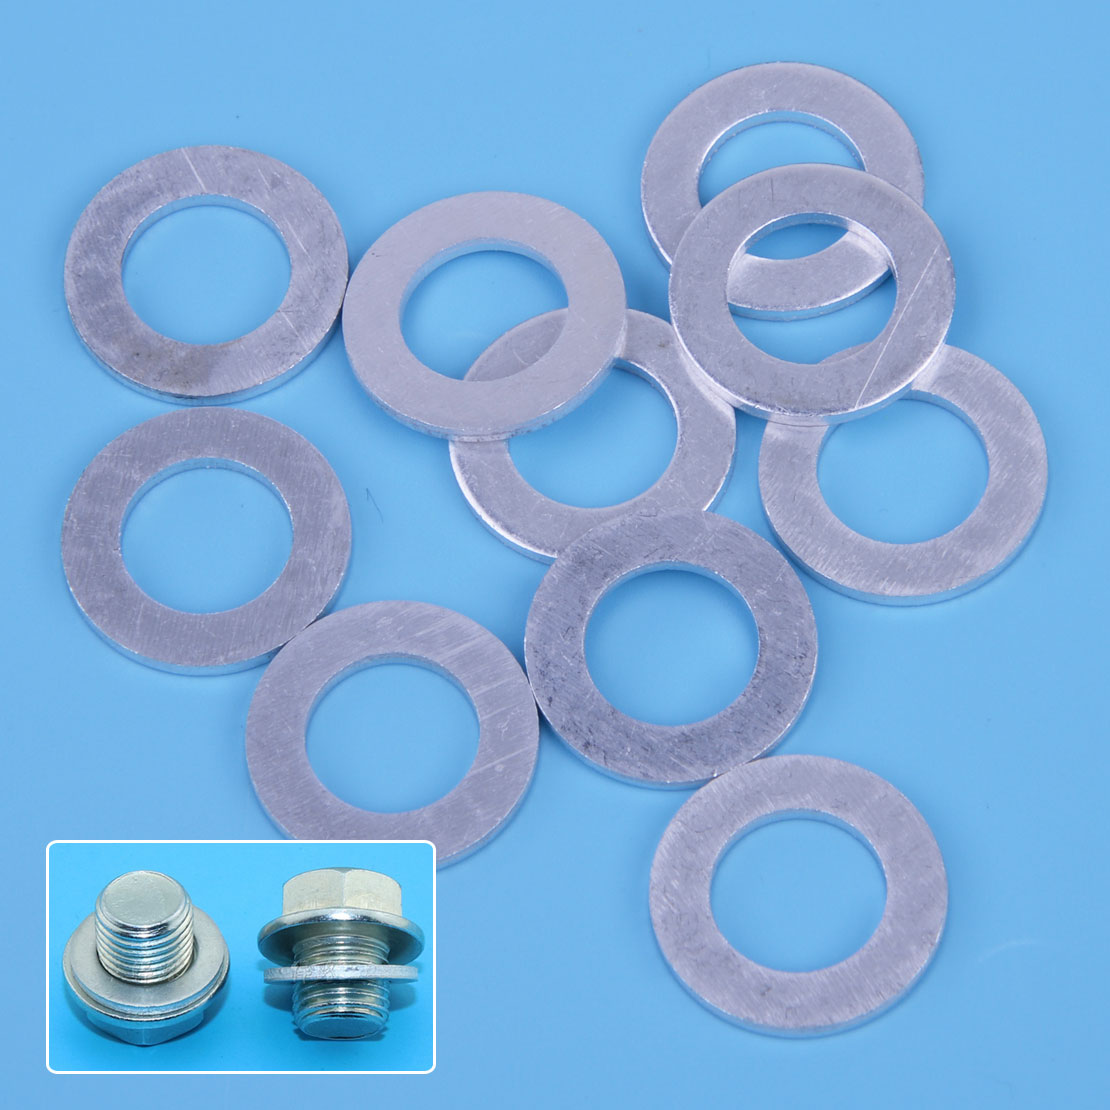 10Pcs Oil Drain Plug Crush Washer Gaskets Fit For Honda Acura 94109-14000 14mm